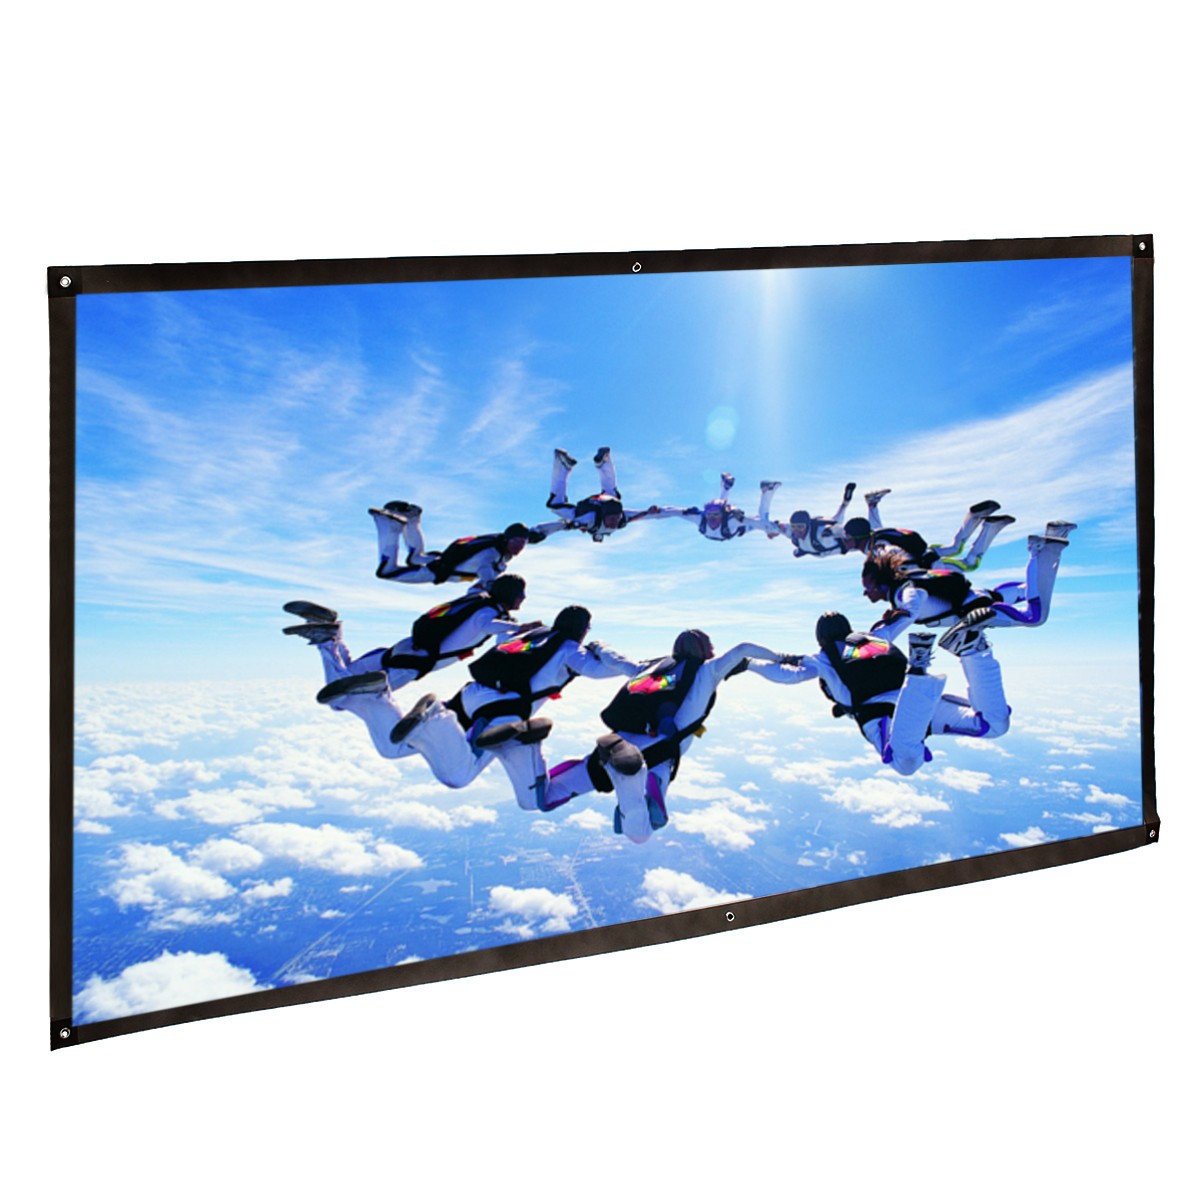 Portable Inch 16:9 150 Fabric Matte Projector Projection Screen To HD Projector 330*185CM everyone gain projection screen 40 inch 16 9 table screen projector hd screen portable easy carry proyector screen fabric